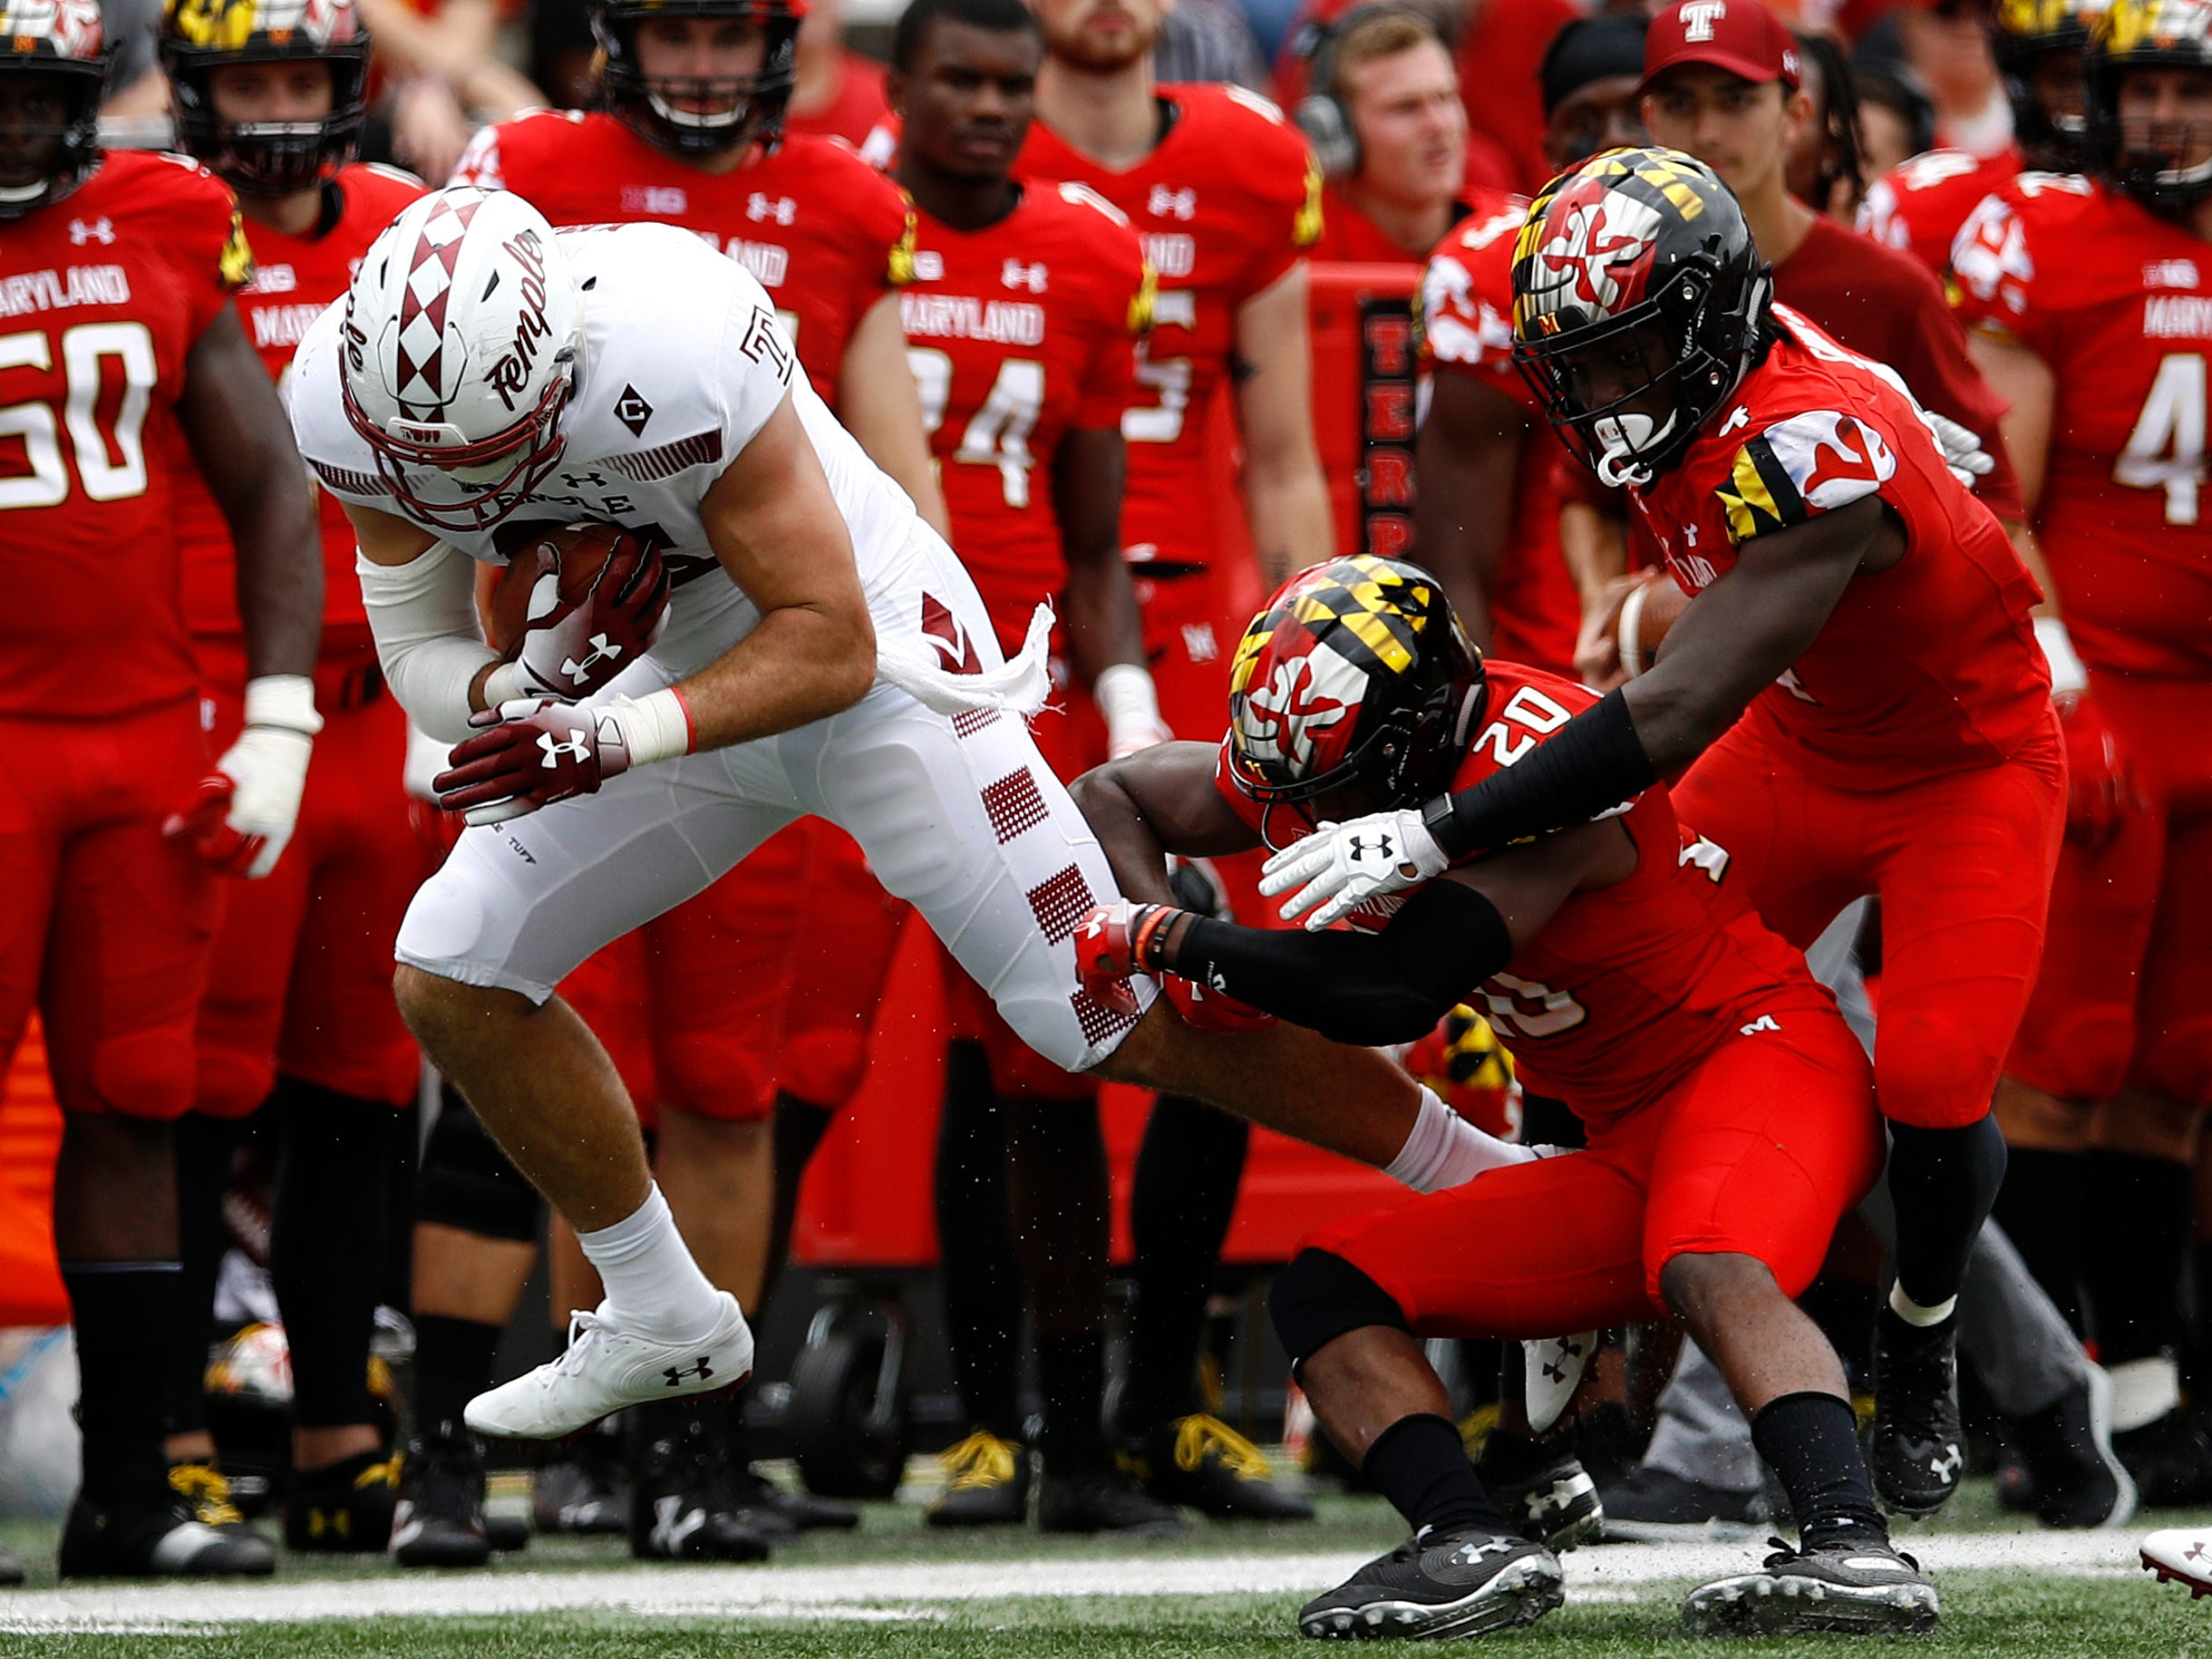 10. Maryland (2-1) – Things were rolling for the Terrapins after two weeks, but that momentum came to an abrupt end with an ugly home loss to previously winless Temple. The Terps couldn't move the ball through the air as they threw a pair of interceptions and two QBs combined to go 8-for-21 for 63 yards. The Terps host Minnesota this week before heading to Michigan. Last week: 7.